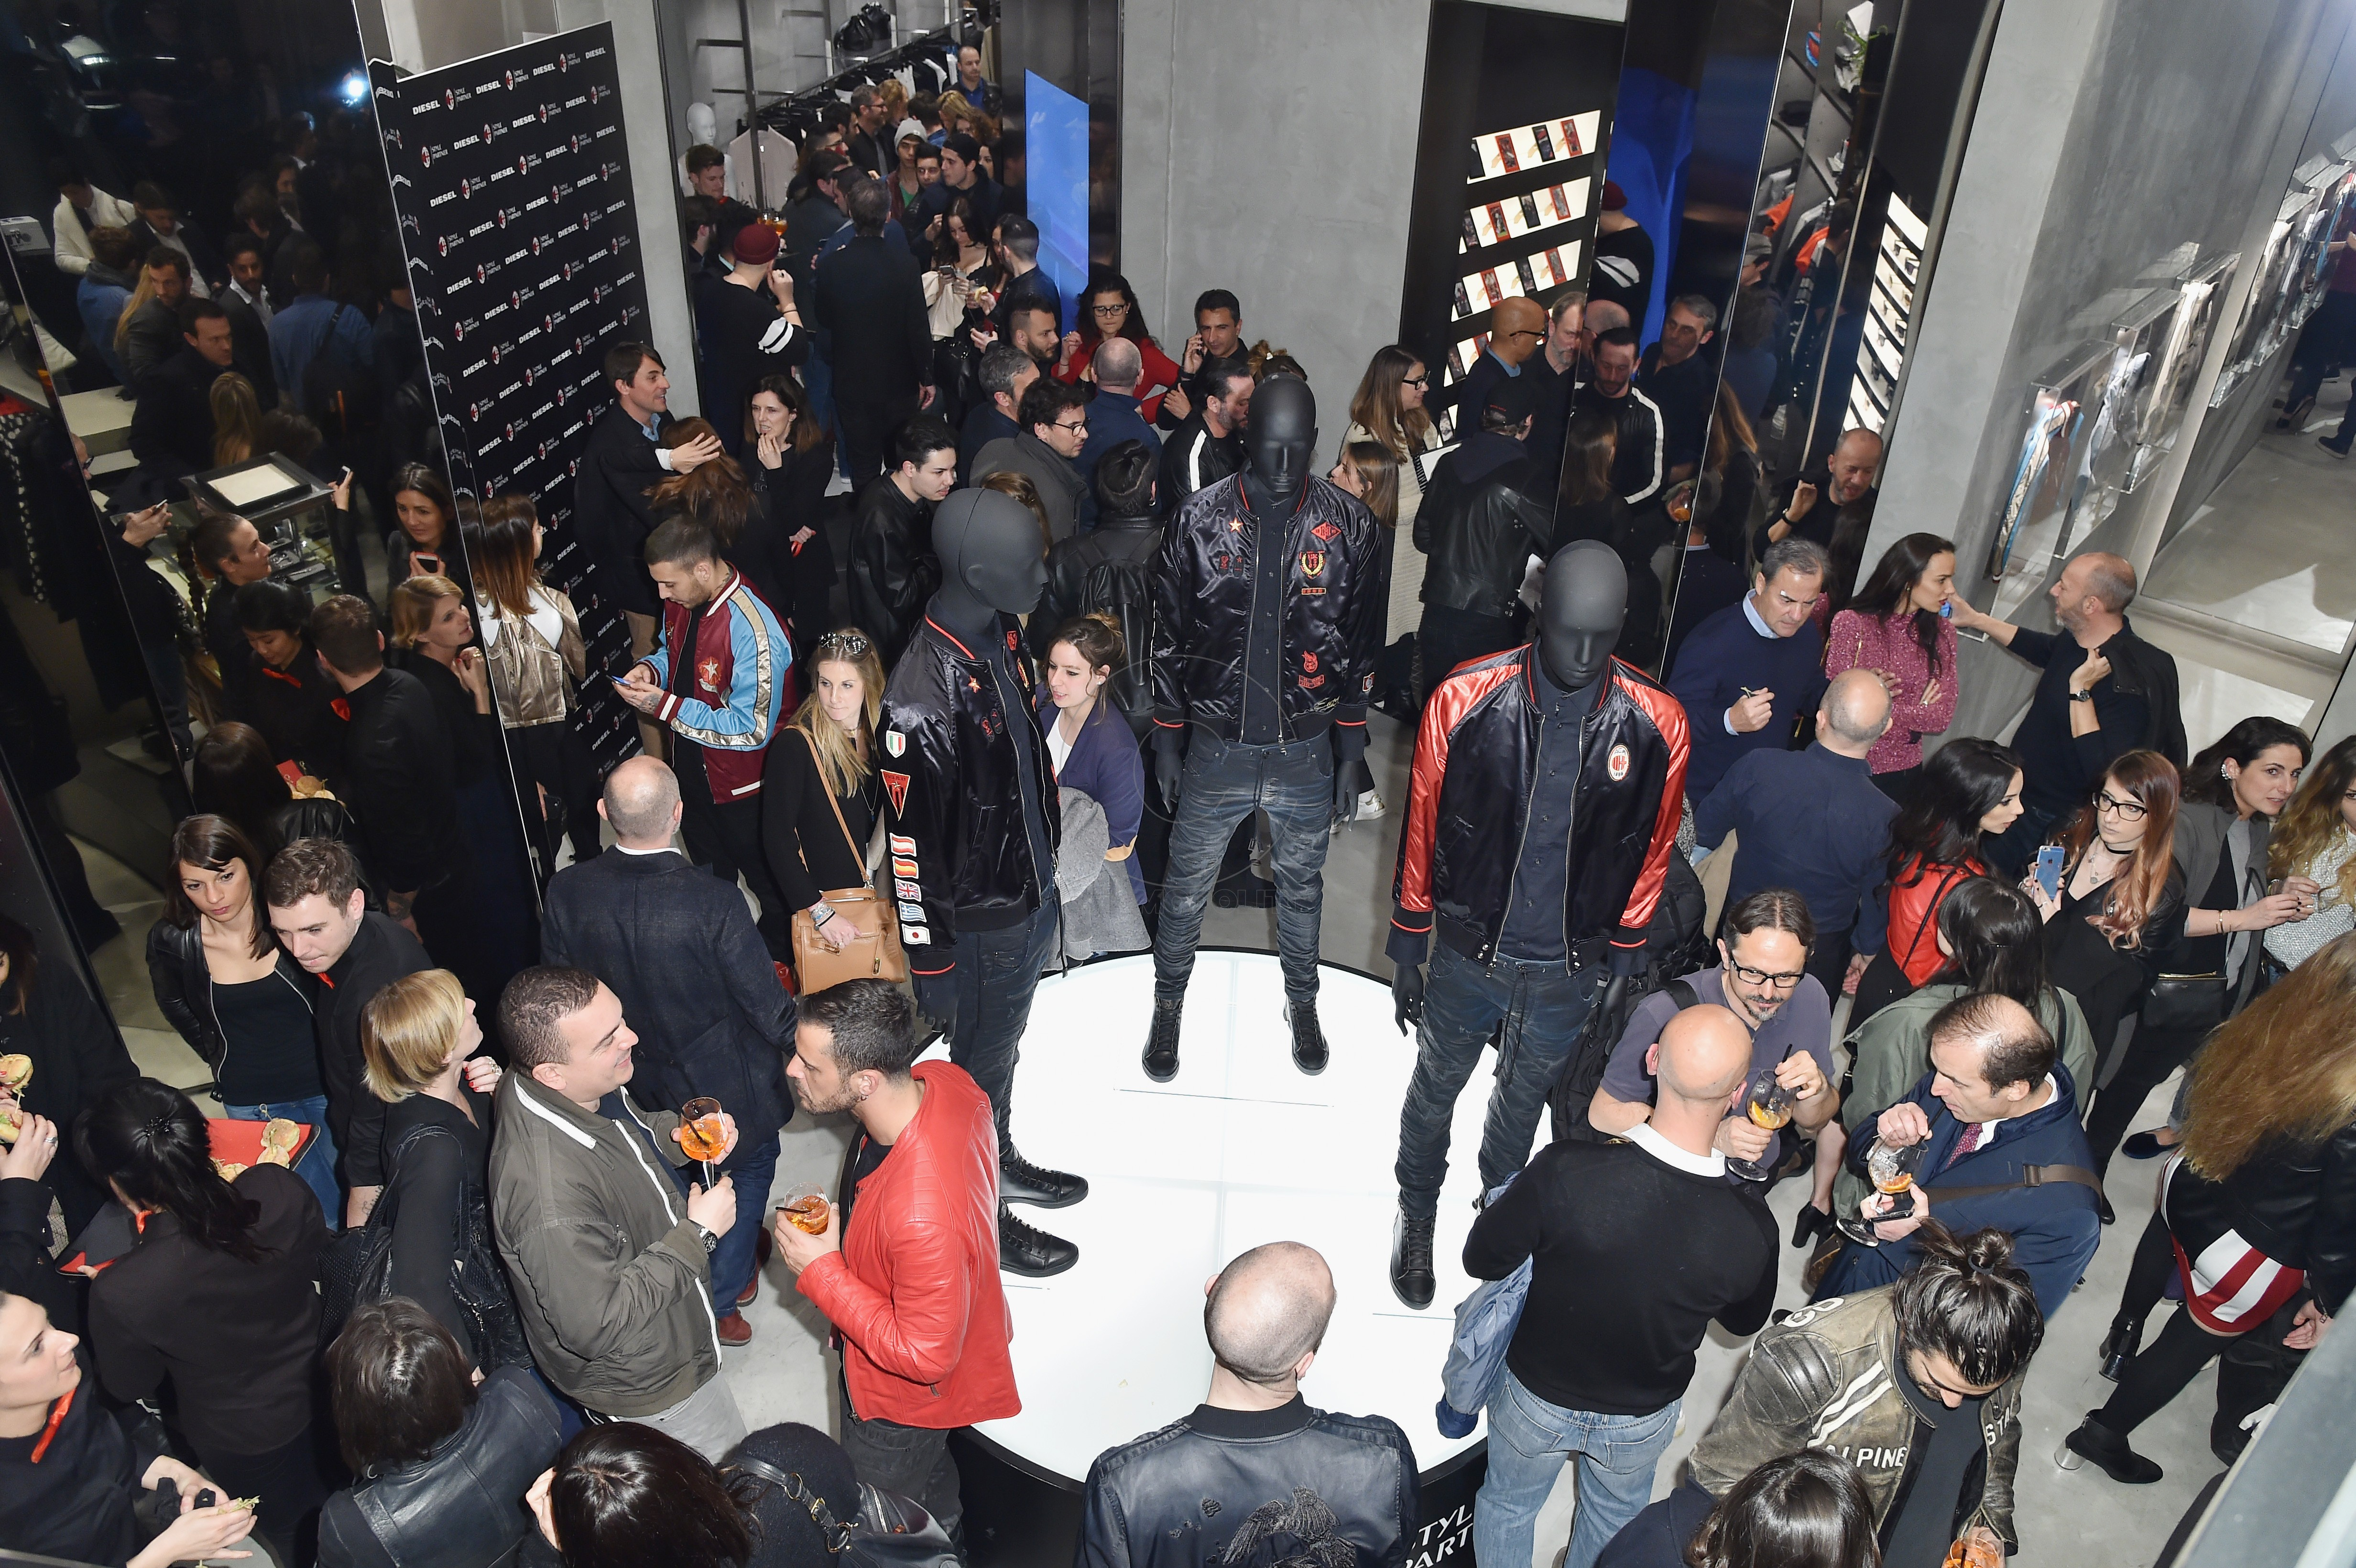 MILAN, ITALY - MARCH 14: General view of The New Bomber Presentation at the Diesel Store on March 14, 2017 in Milan, Italy. (Photo by Jacopo Raule/Getty Images for Diesel)